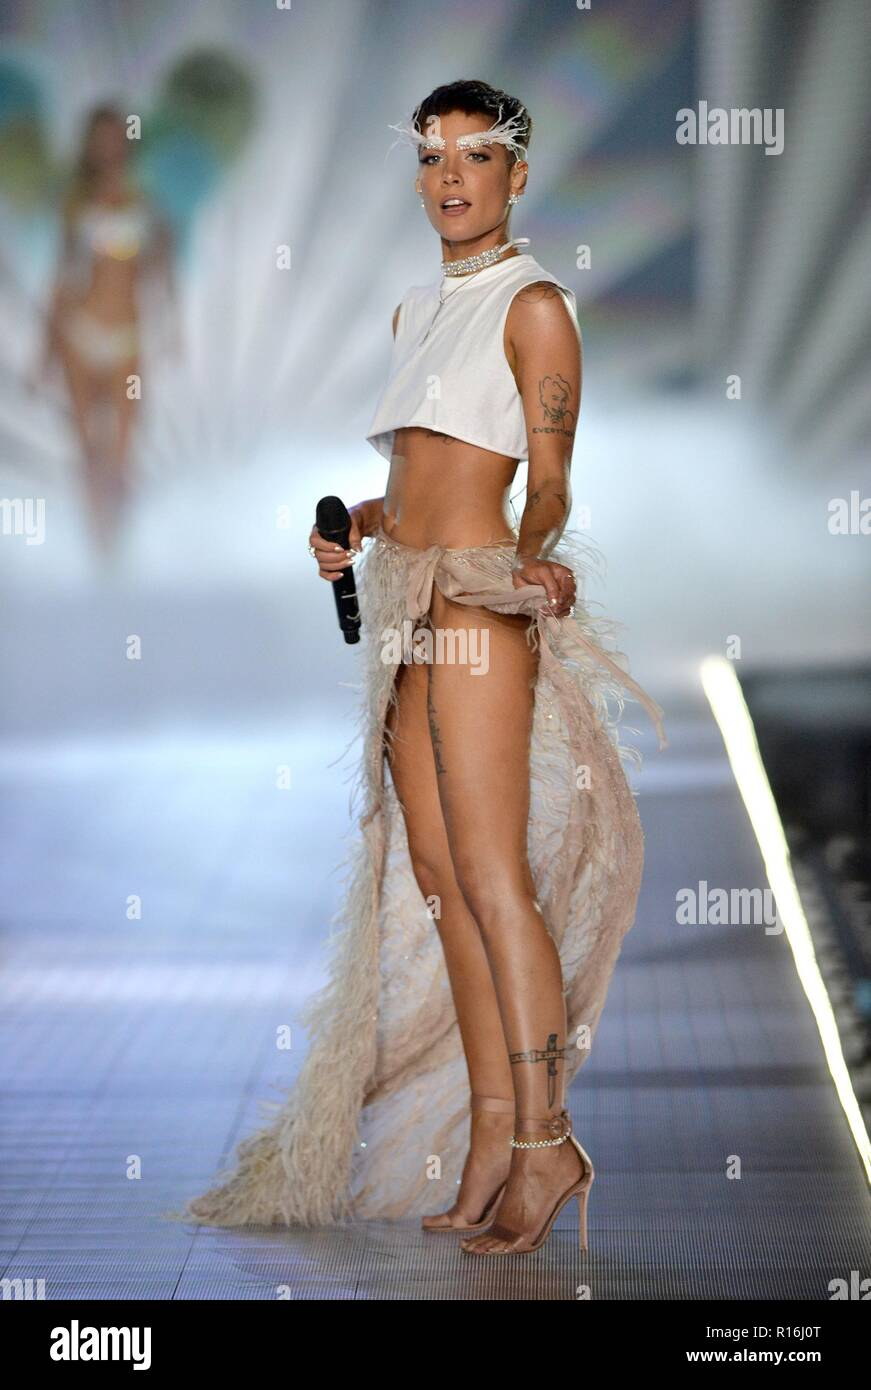 Halsey On The Runway For 2018 Victoria S Secret Fashion Show